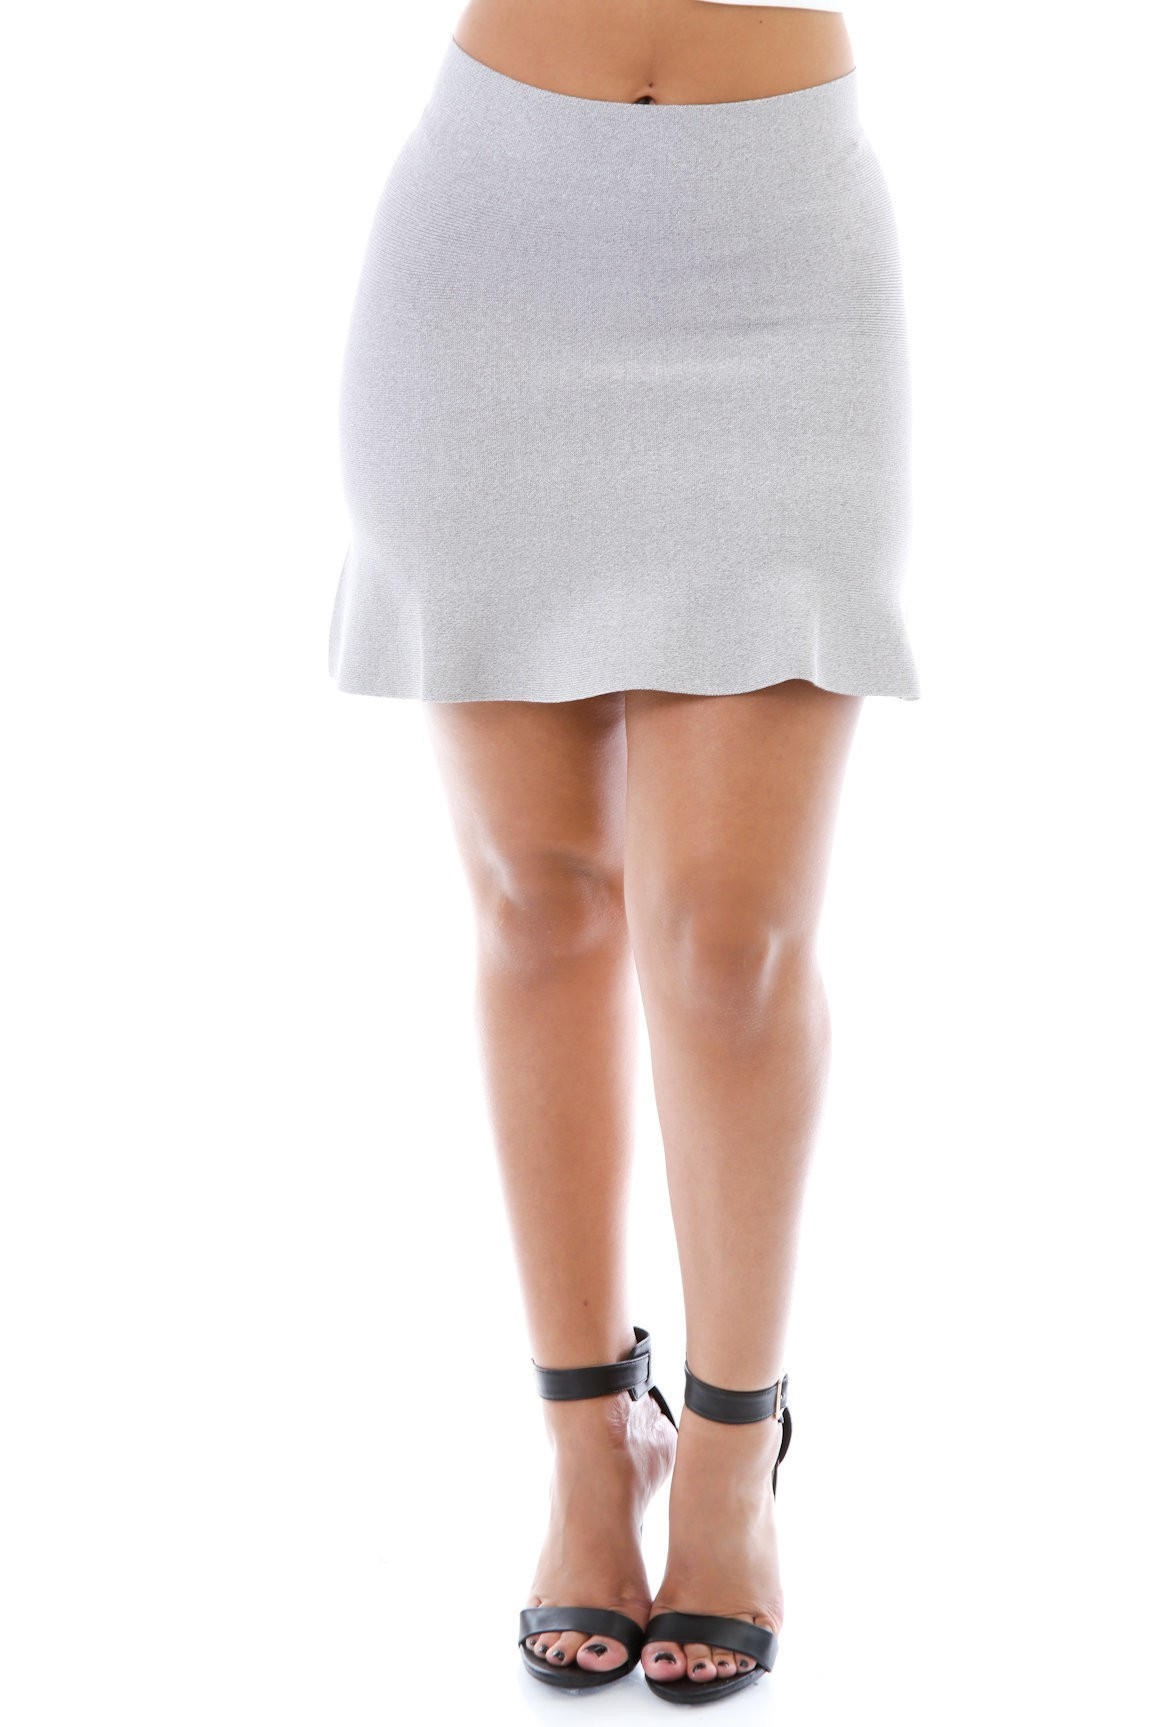 Stretchy Textured Skirt